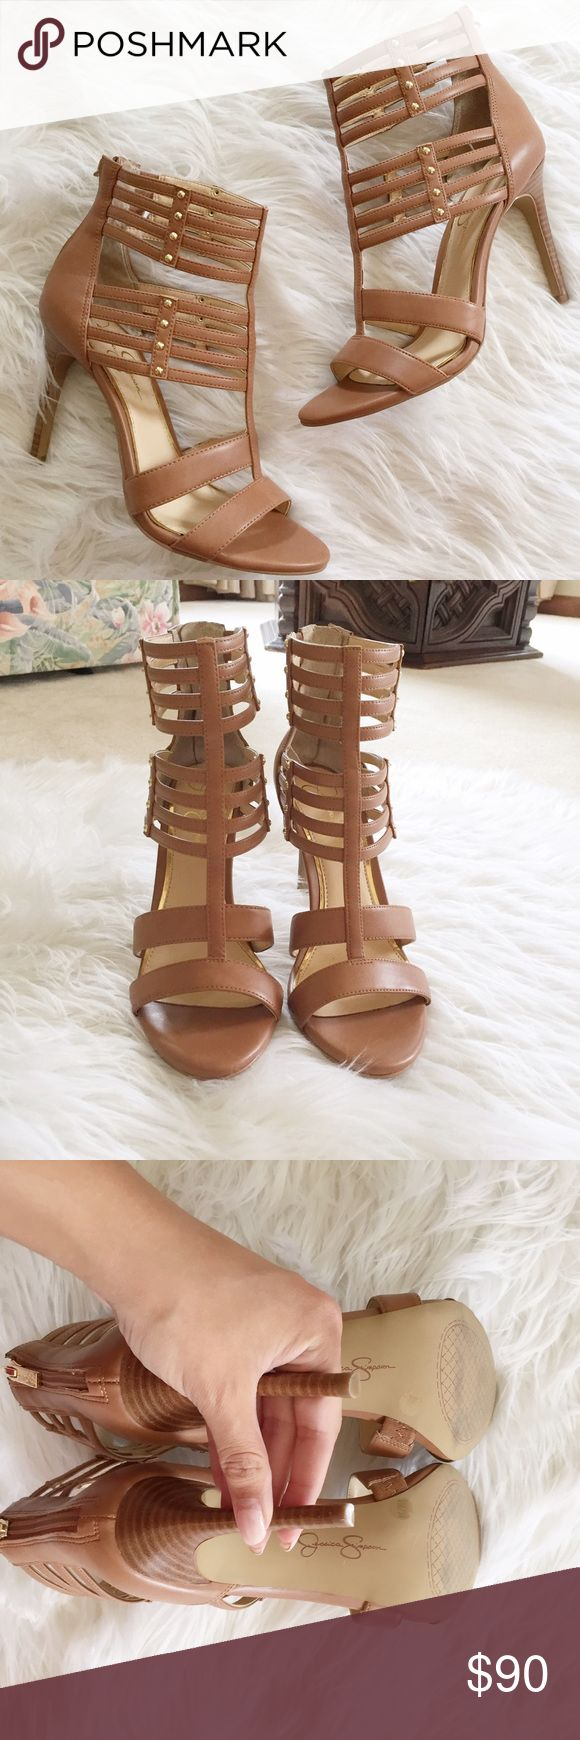 1 HR SALE‼️NWOT Jessica Simpson High Heel Sandal Gorgeous NWOT Jessica Simpson Strappy high heel sandals in excellent condition. Only flaw is light wear to bottoms from being in the store. 14gvff Jessica Simpson Shoes Sandals